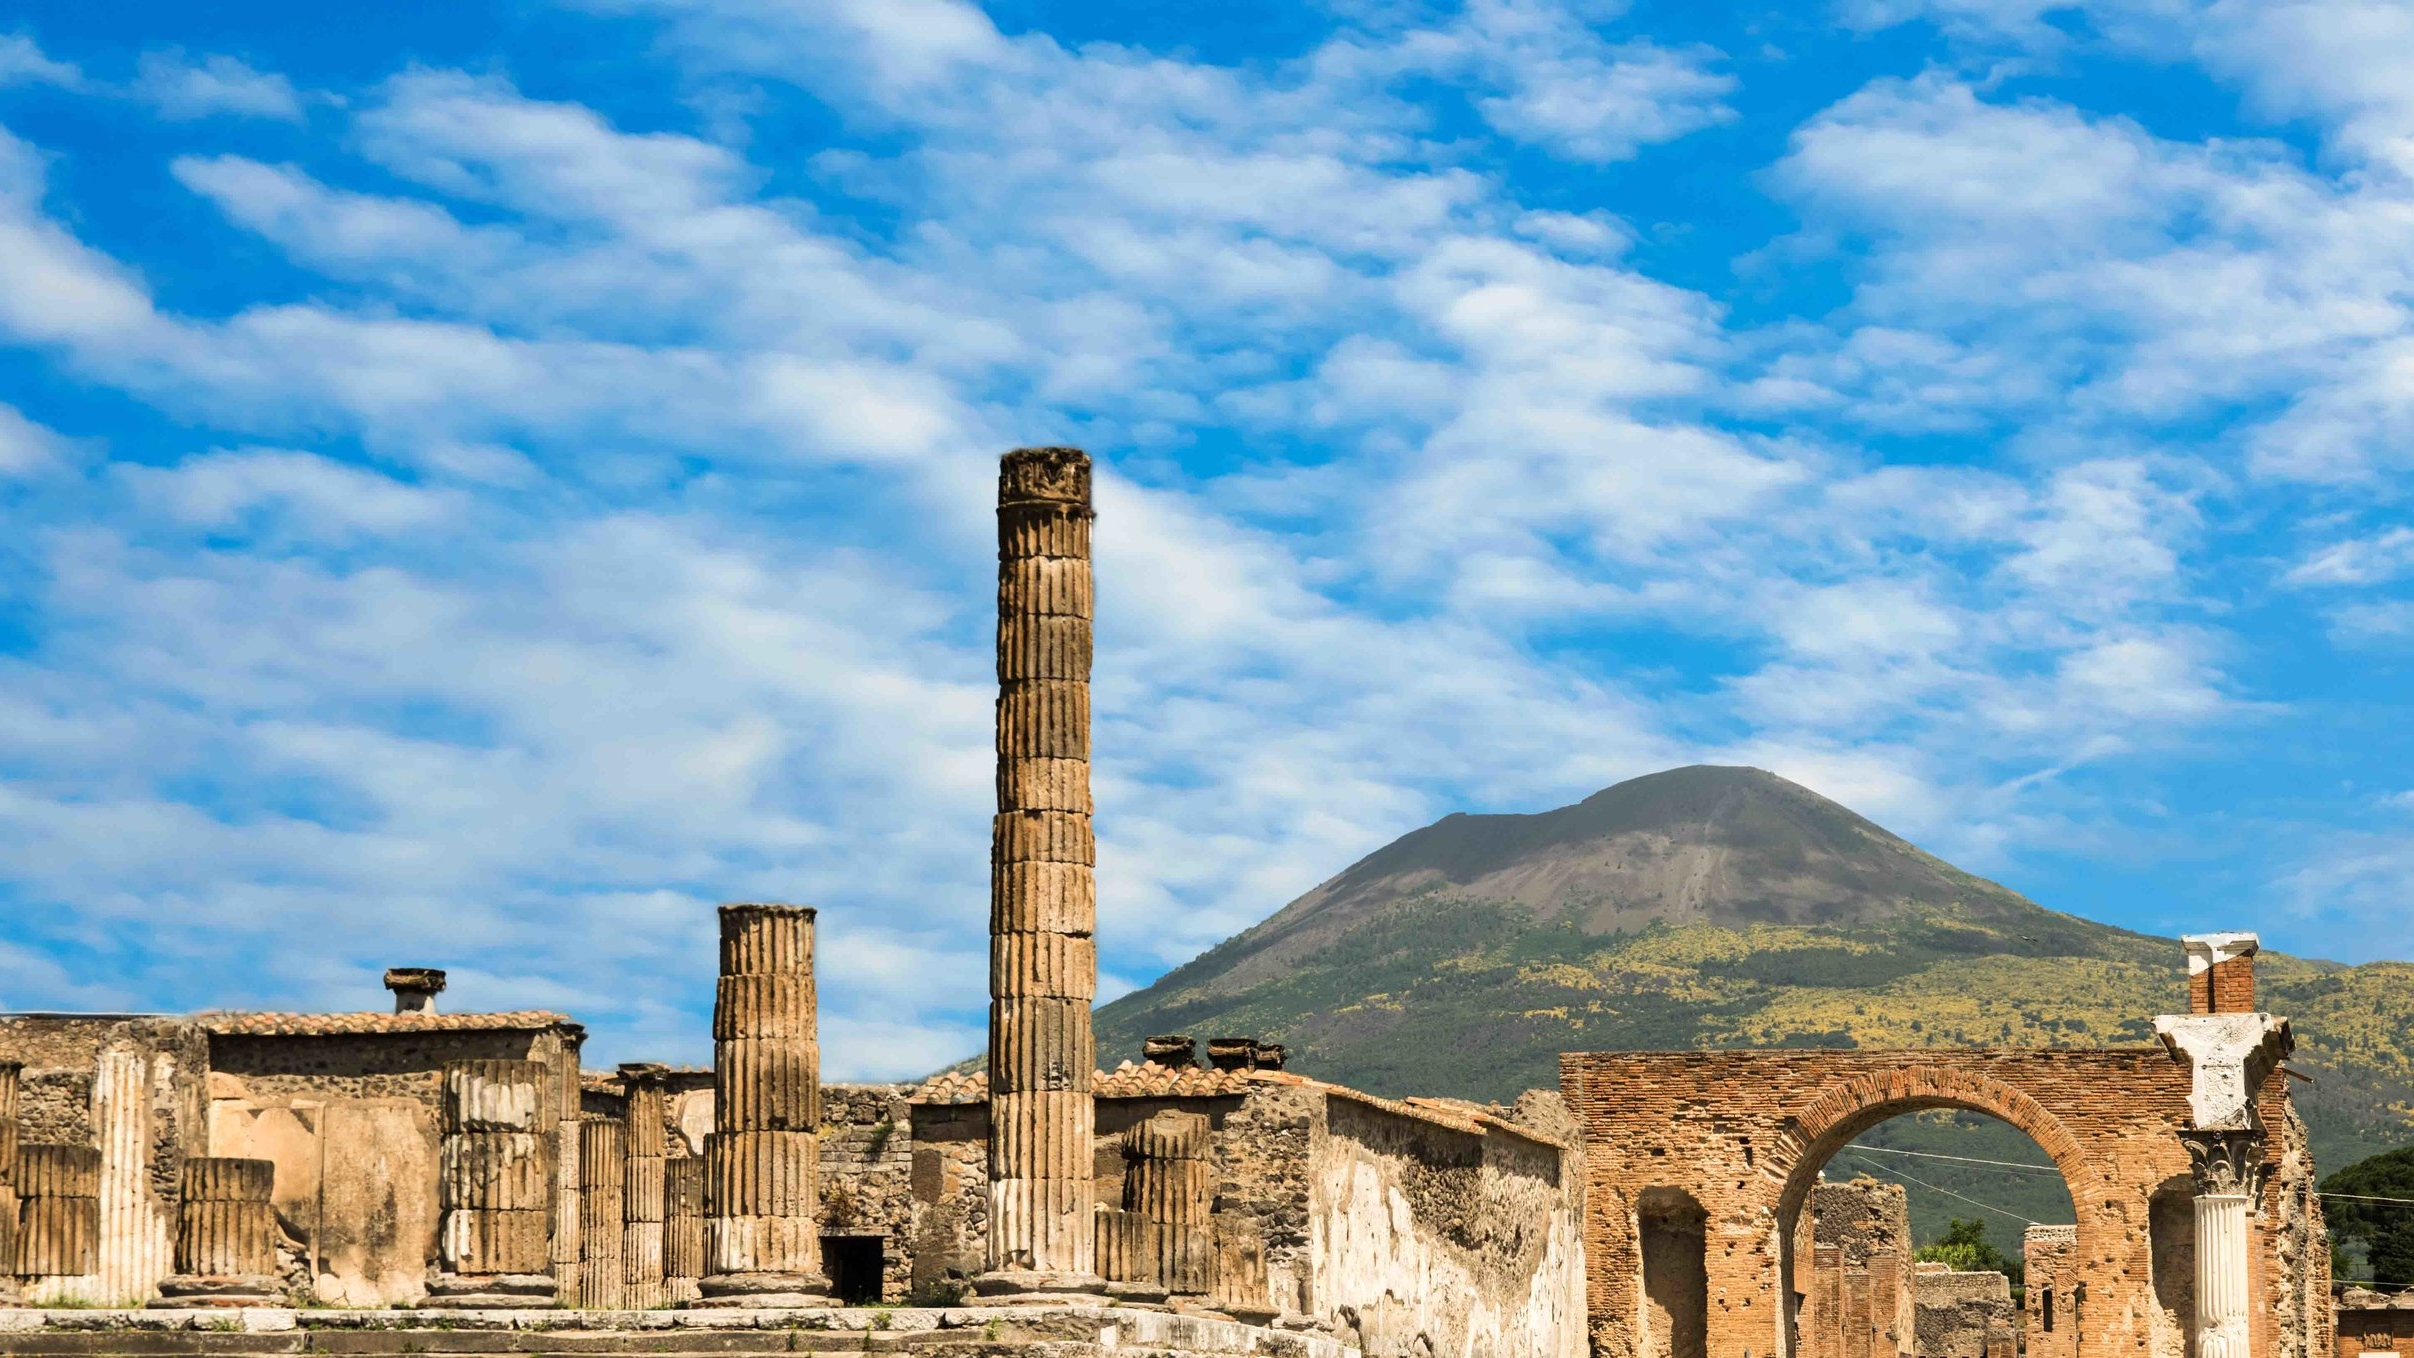 US Equity Holdings CEO Named Strategic Advisor to Fraunhofer's Pompeii Sustainable Preservation Project